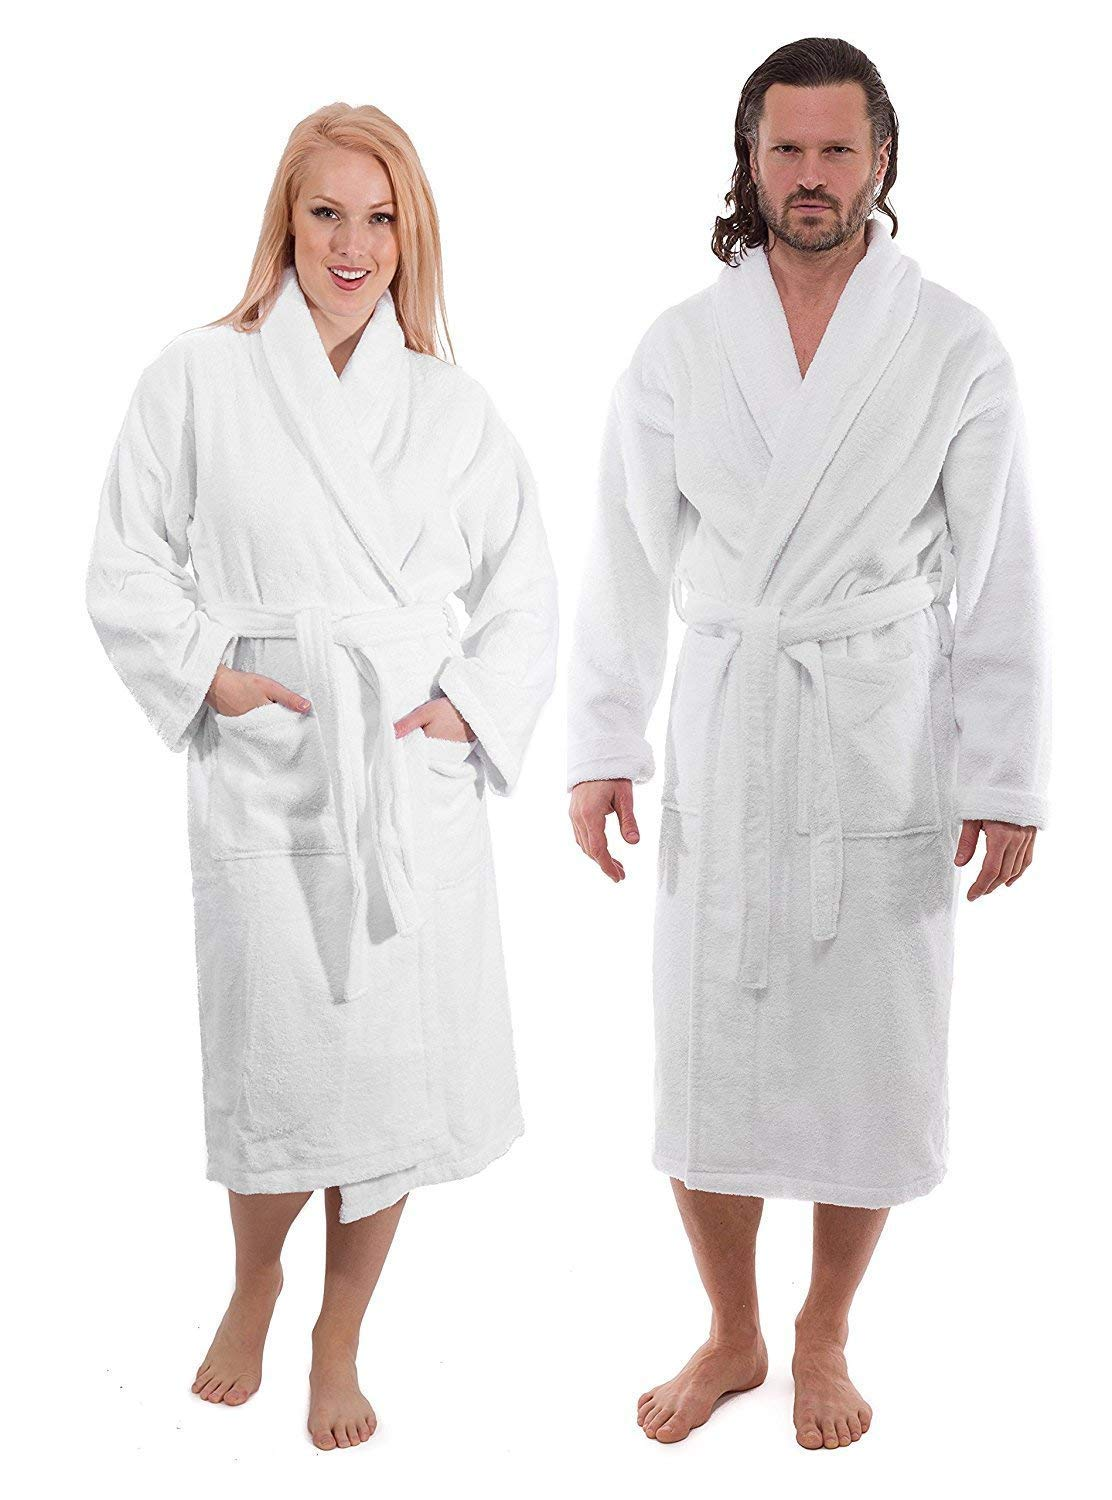 Luxury Terry Cotton Cloth Plush Bathrobe - Premium Cotton Hotel and Spa Robes for Men and Women - Made with 100% Turkish Quality Cotton (XXLarge)